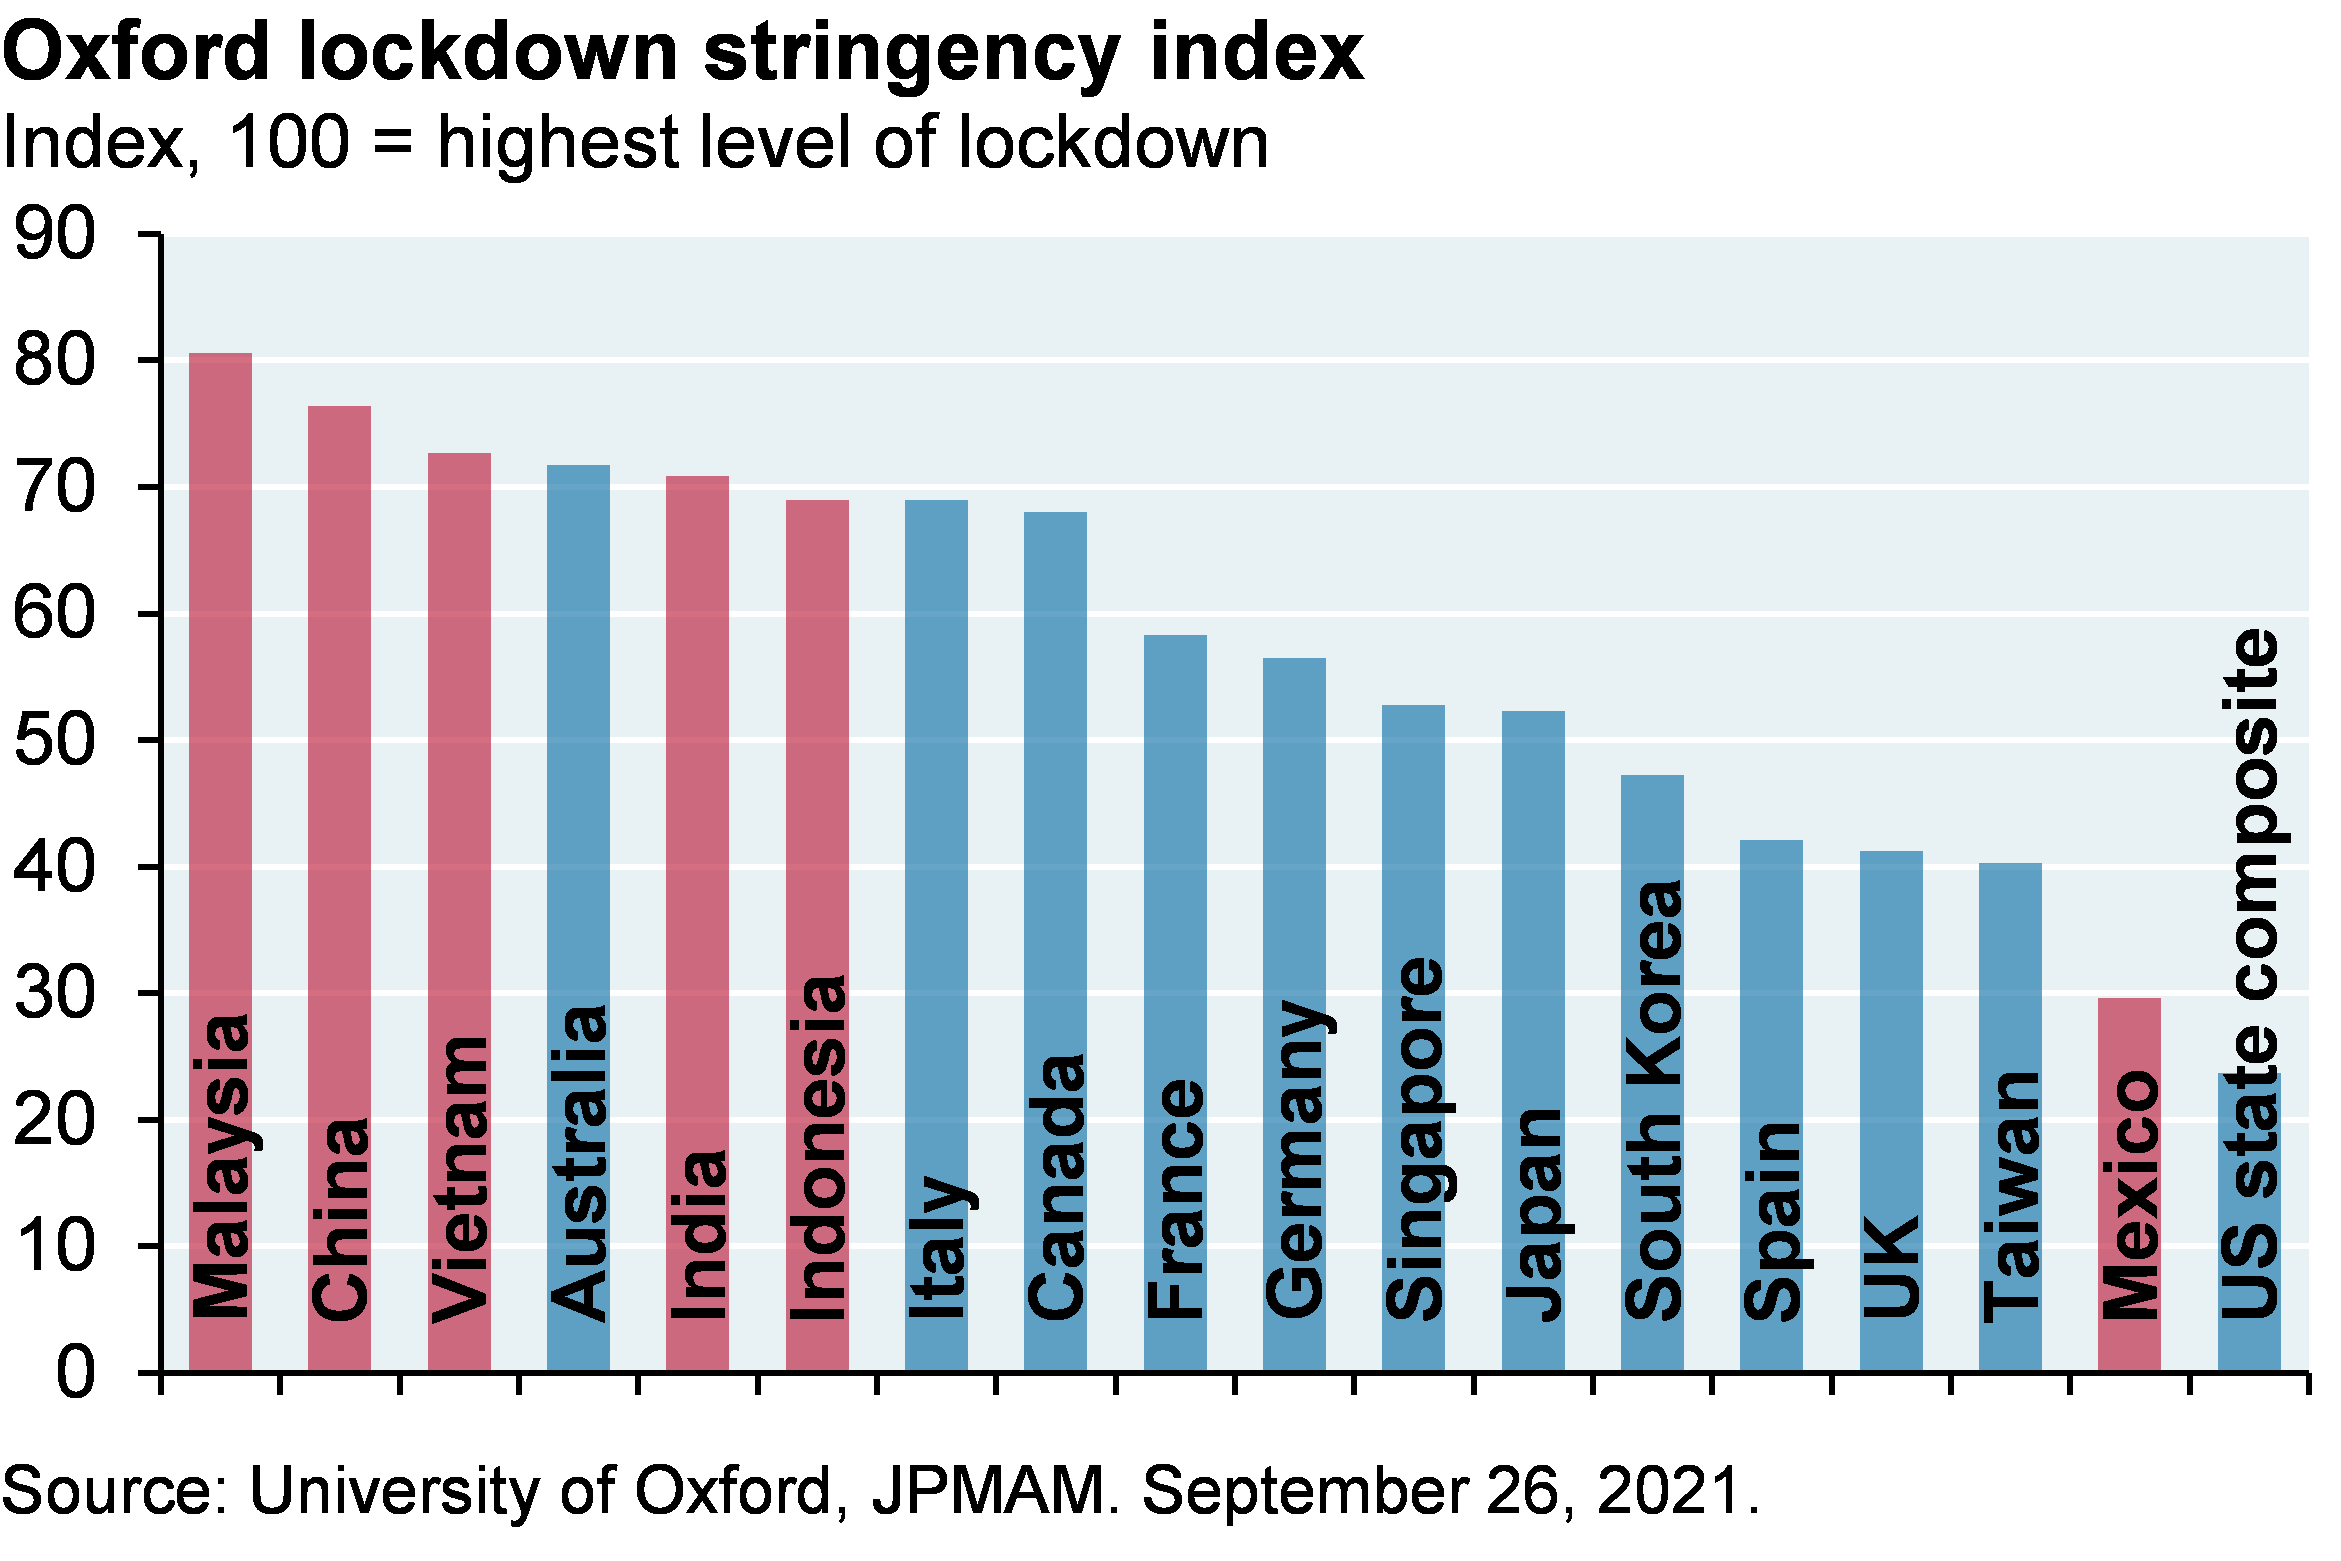 Bar chart shows the Oxford lockdown stringency index levels for various countries. Many Emerging Market countries (in red) have higher COVID stringency requirements than developed countries, an indication of how seriously the governments themselves view the risks of the pandemic and the ability of their healthcare systems to respond to it.